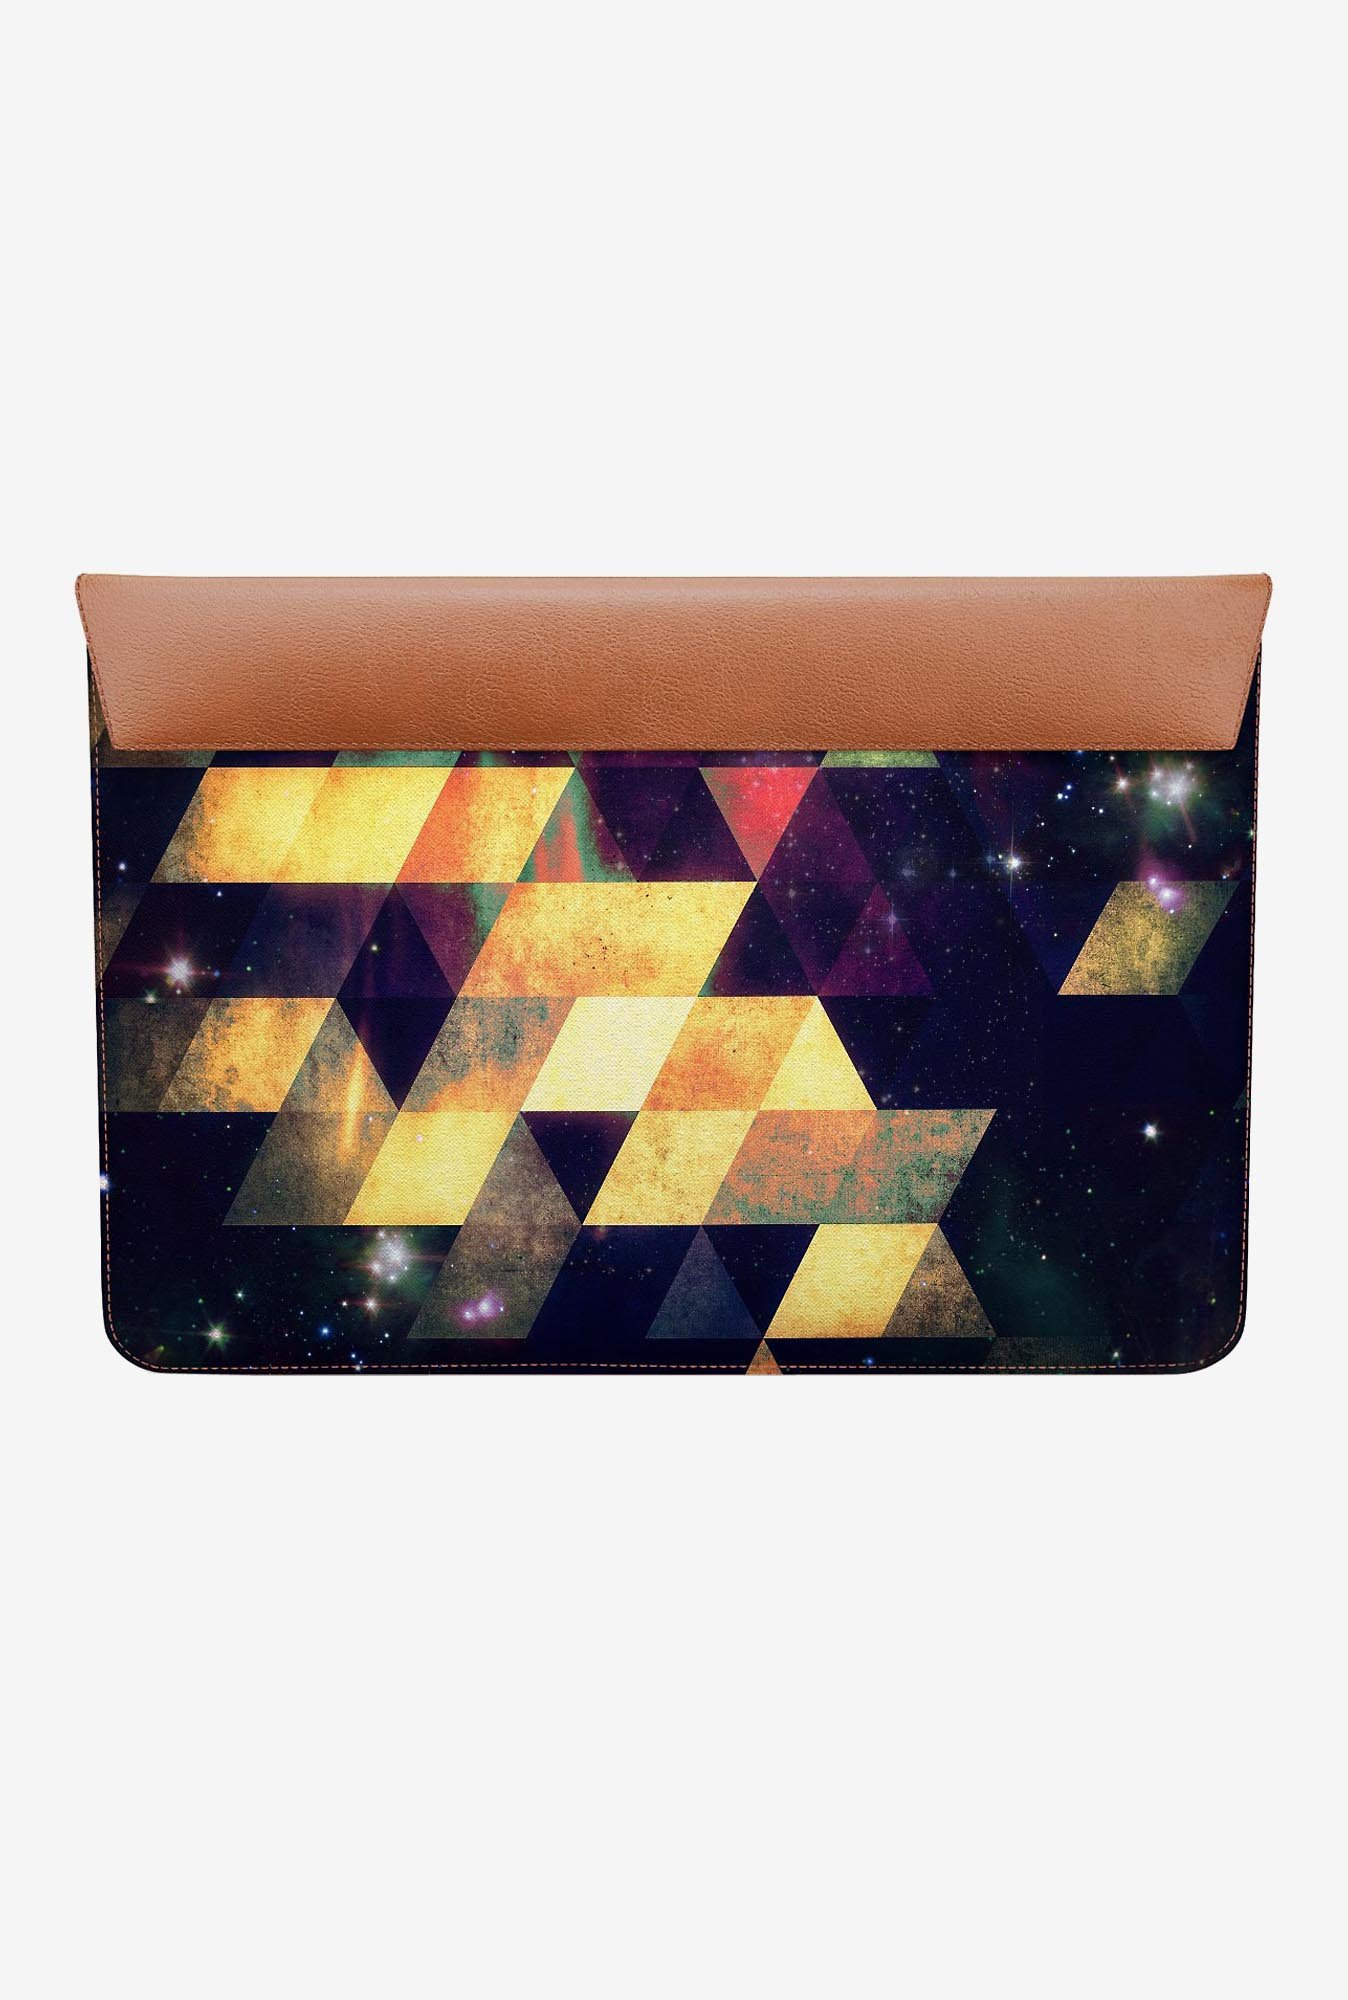 "DailyObjects Swwyrr Macbook Air 11"" Envelope Sleeve"